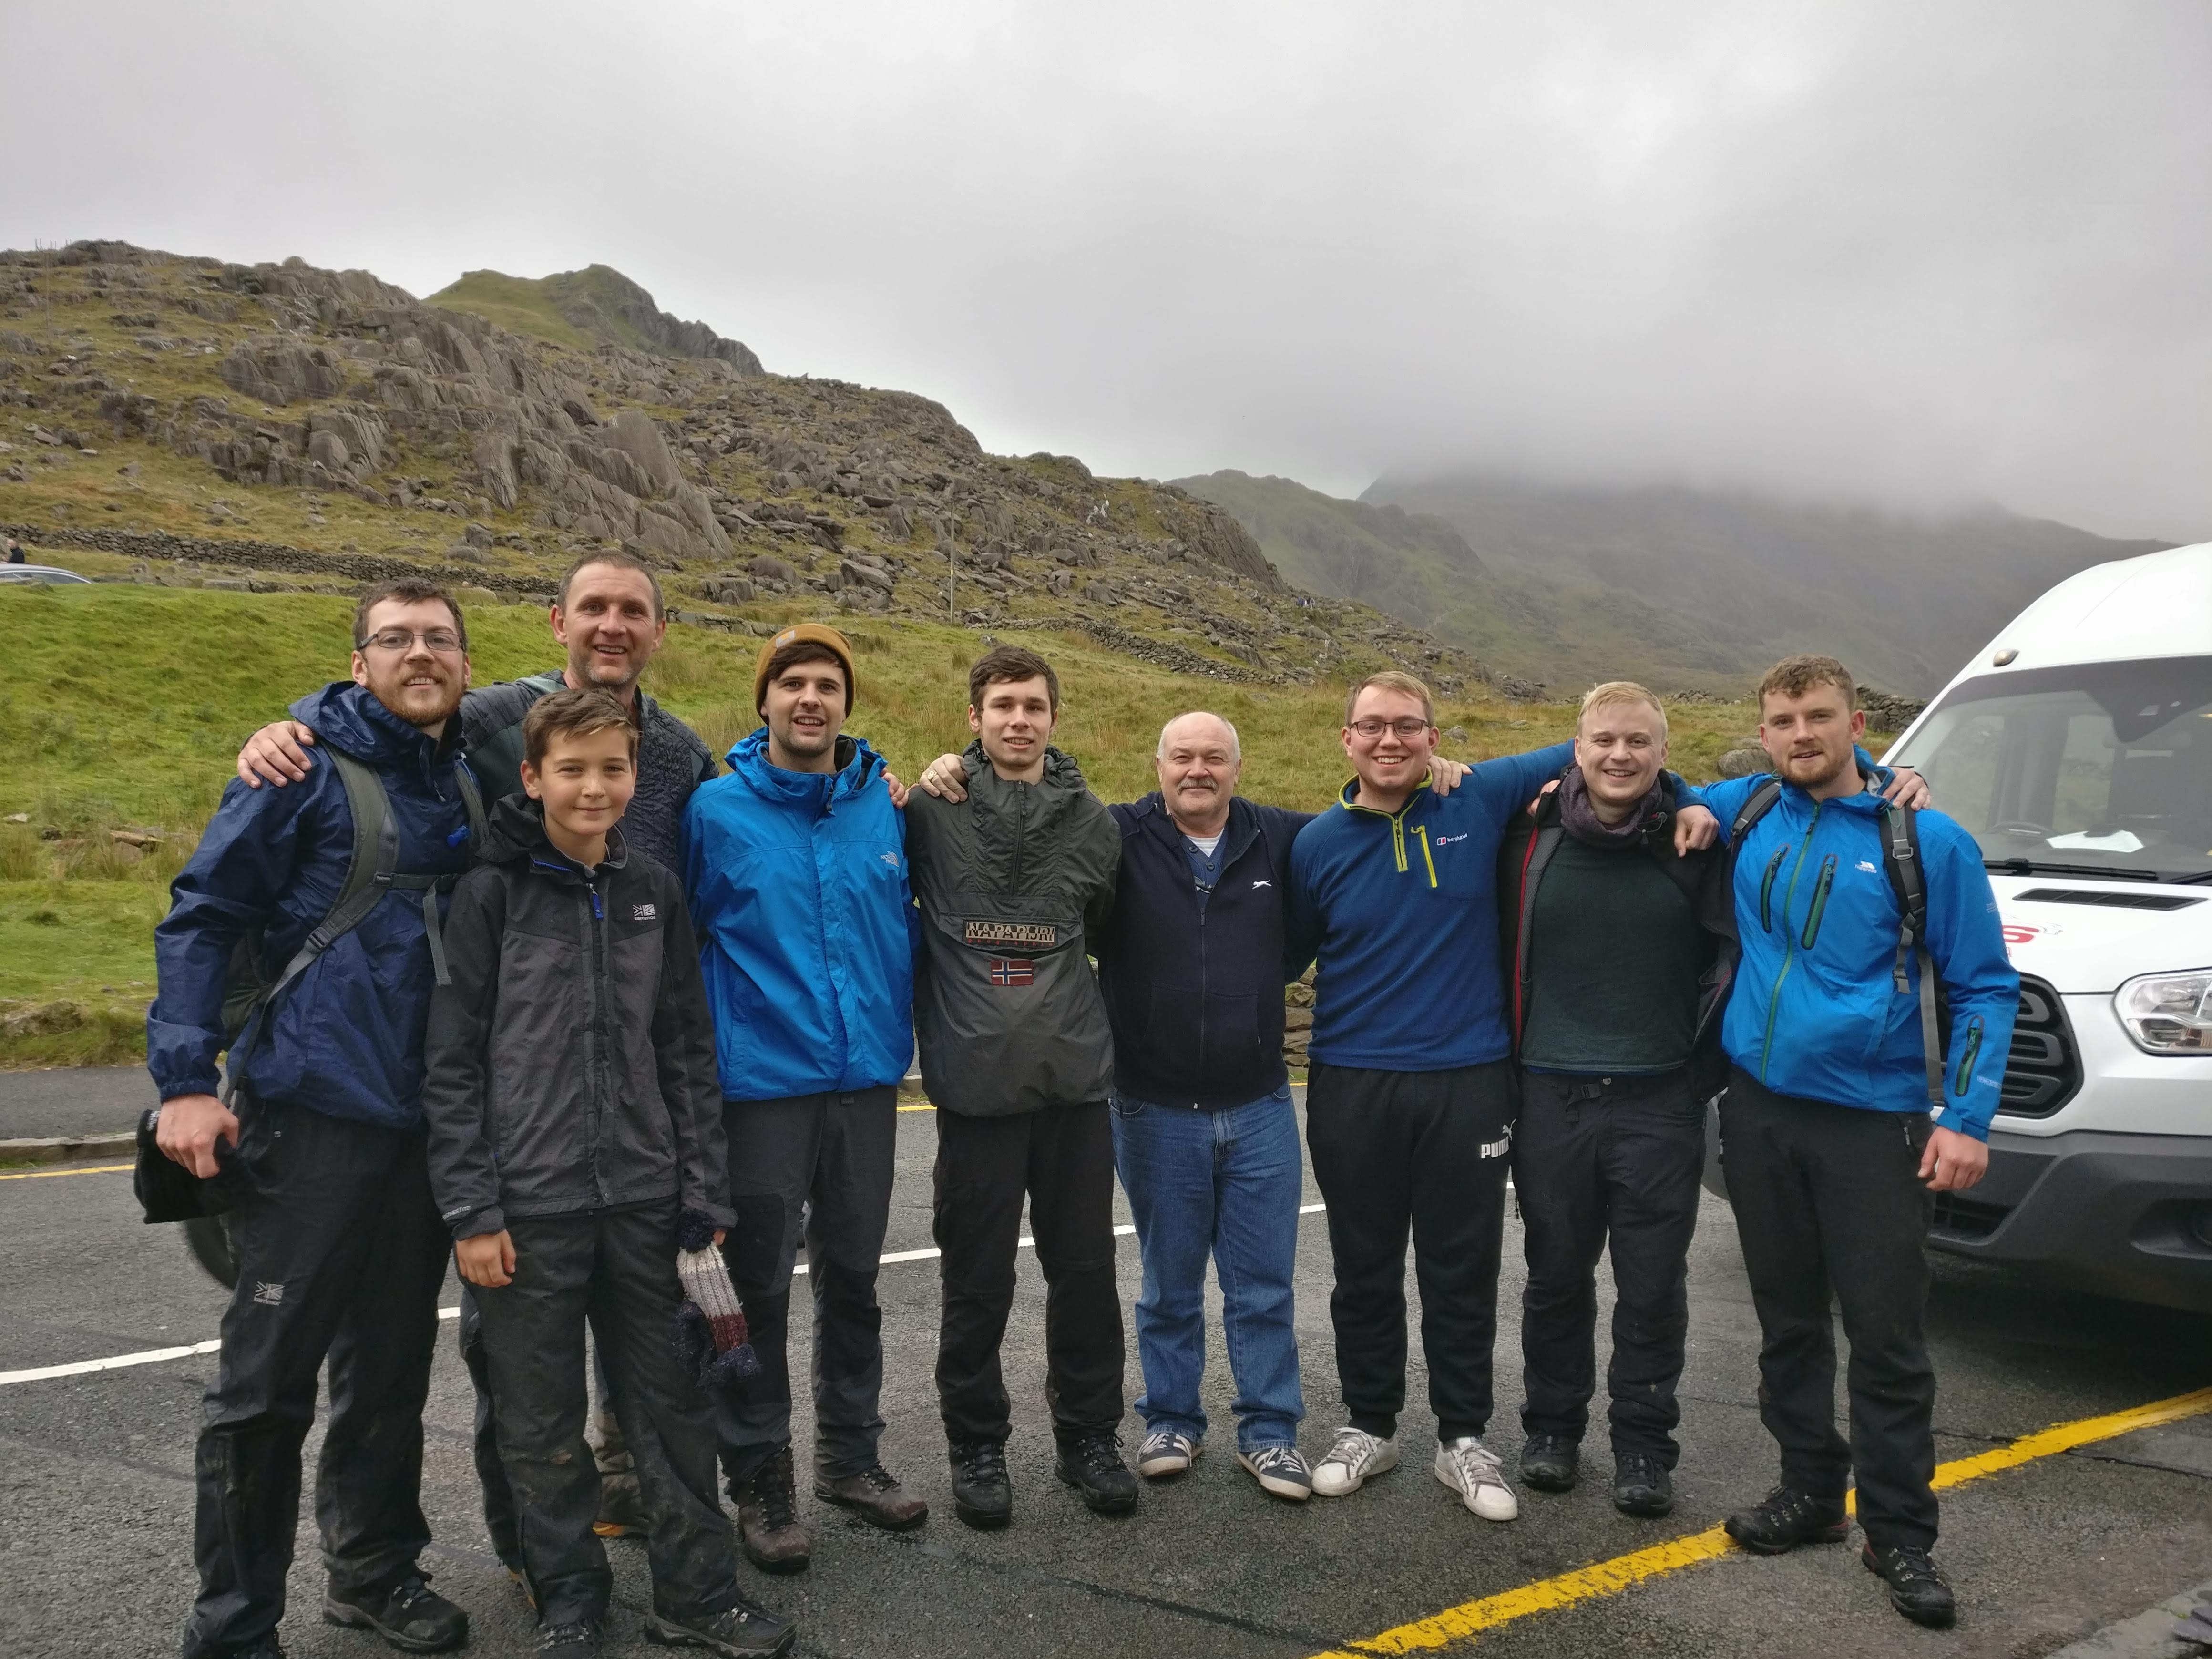 AES Solar team who completed the three peak challenge